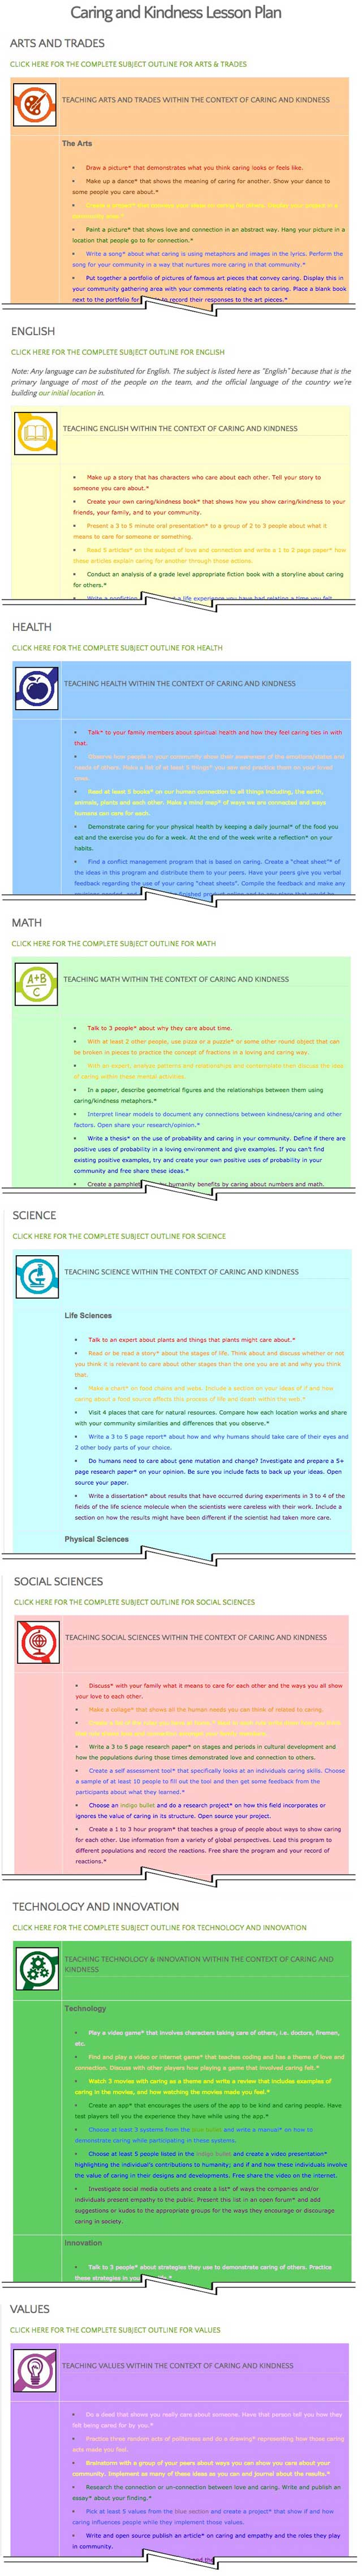 "This last week the core team transferred all of the written content for the Caring and Kindness Lesson Plan to the website, as you see here. This lesson plan purposed to teach all subjects, to all learning levels, in any learning environment, using the central theme of ""Caring and Kindness"" is now 100% completely written on our website:"